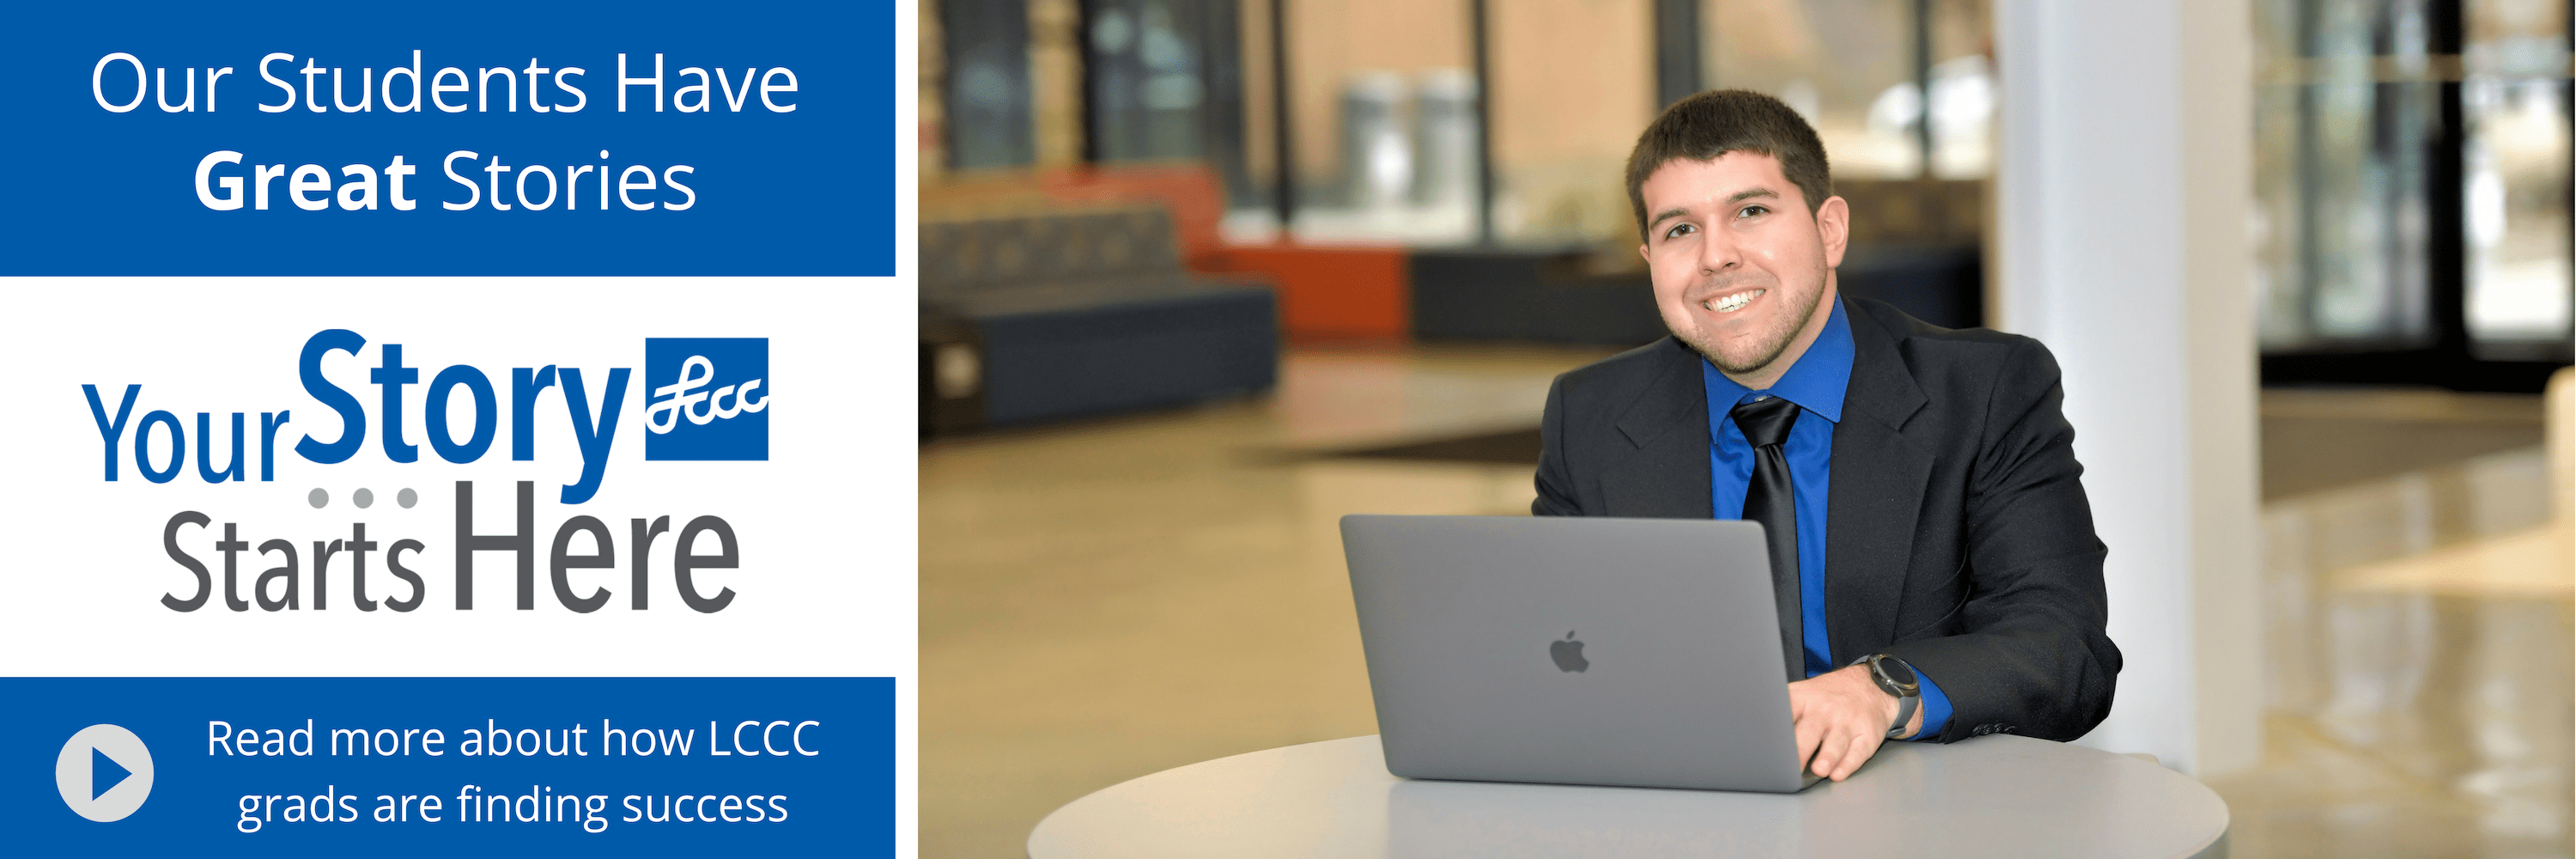 Our Students Have Great Stories. Read more about how LCCC grads are finding success